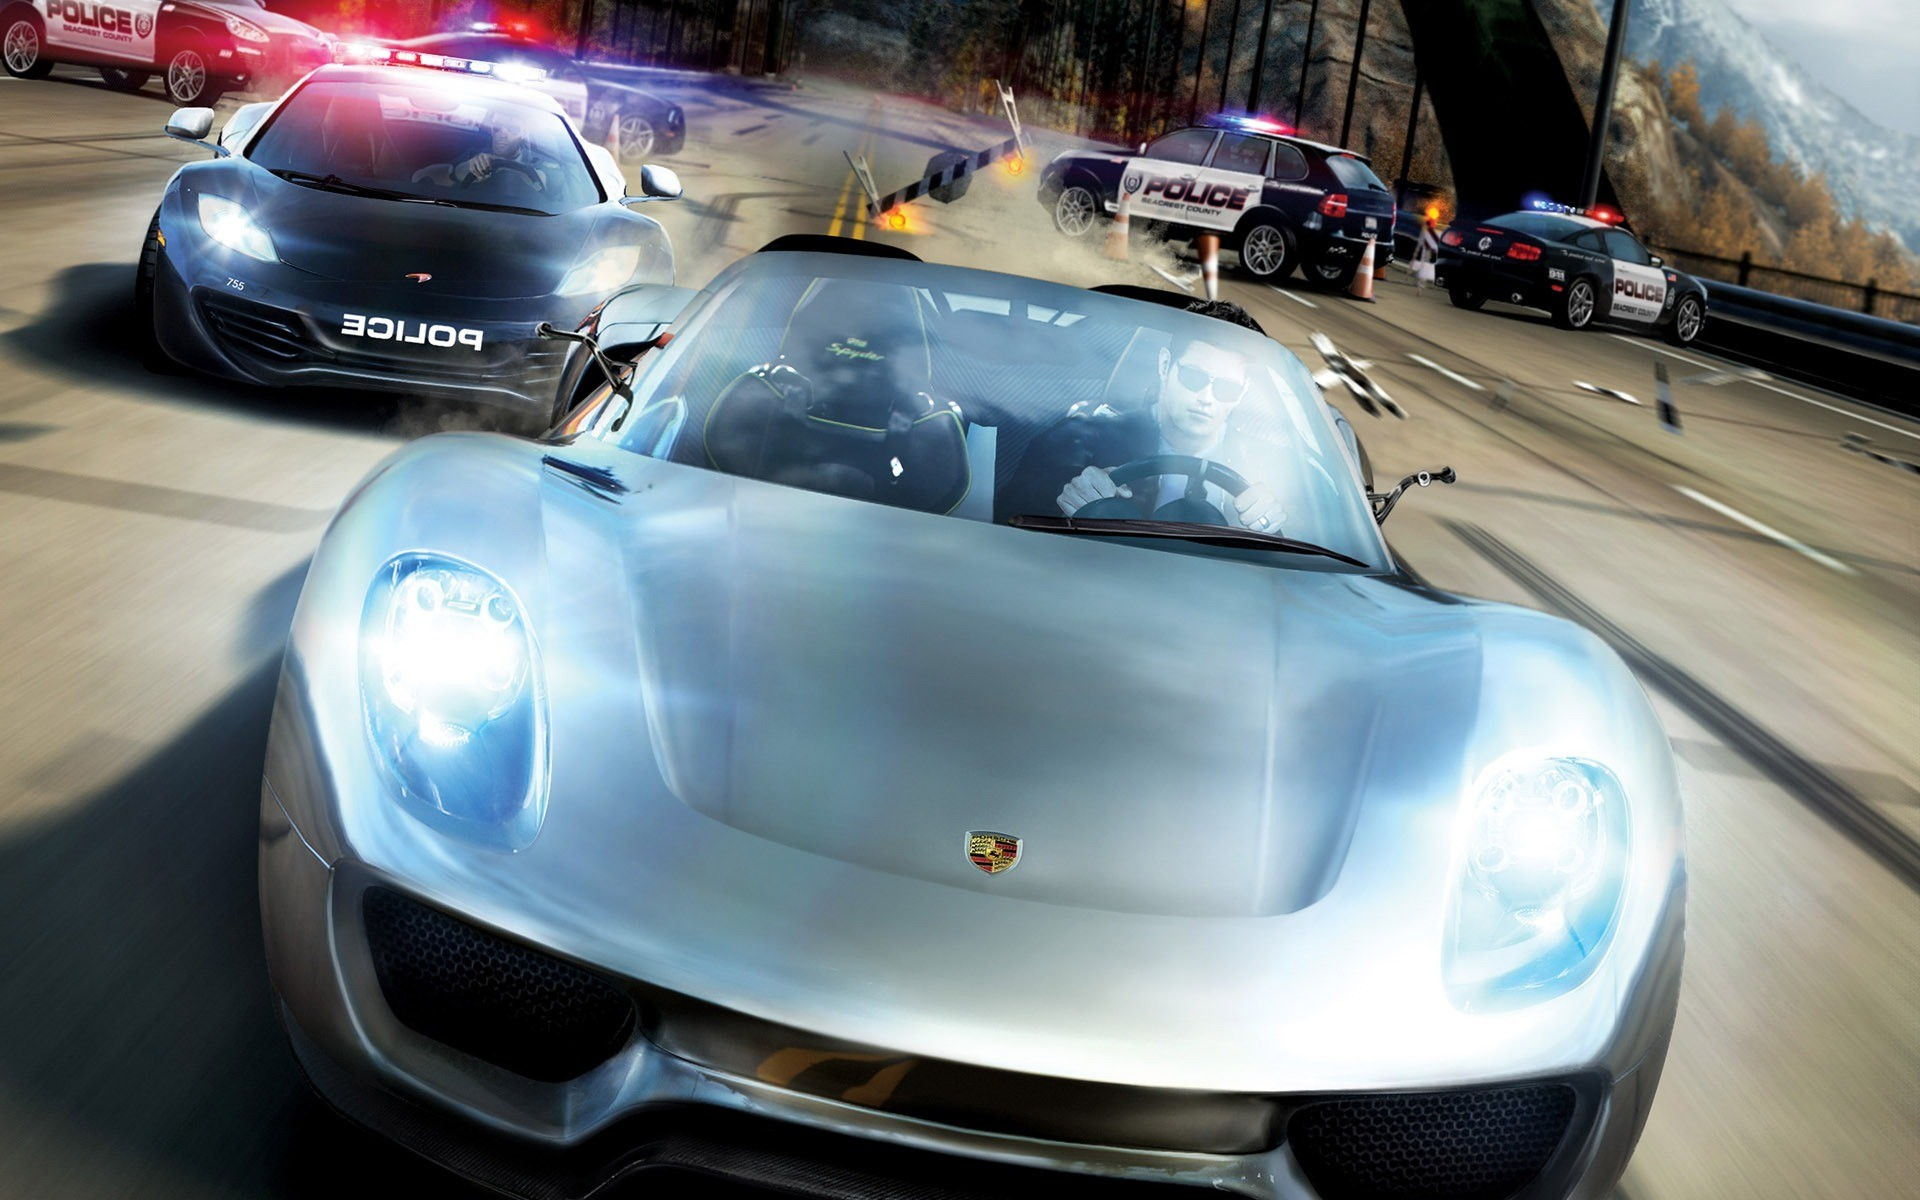 1920x1200 Need For Speed Carbon Cars wallpaper - #Uncategorized #Carbon, #Cars, #